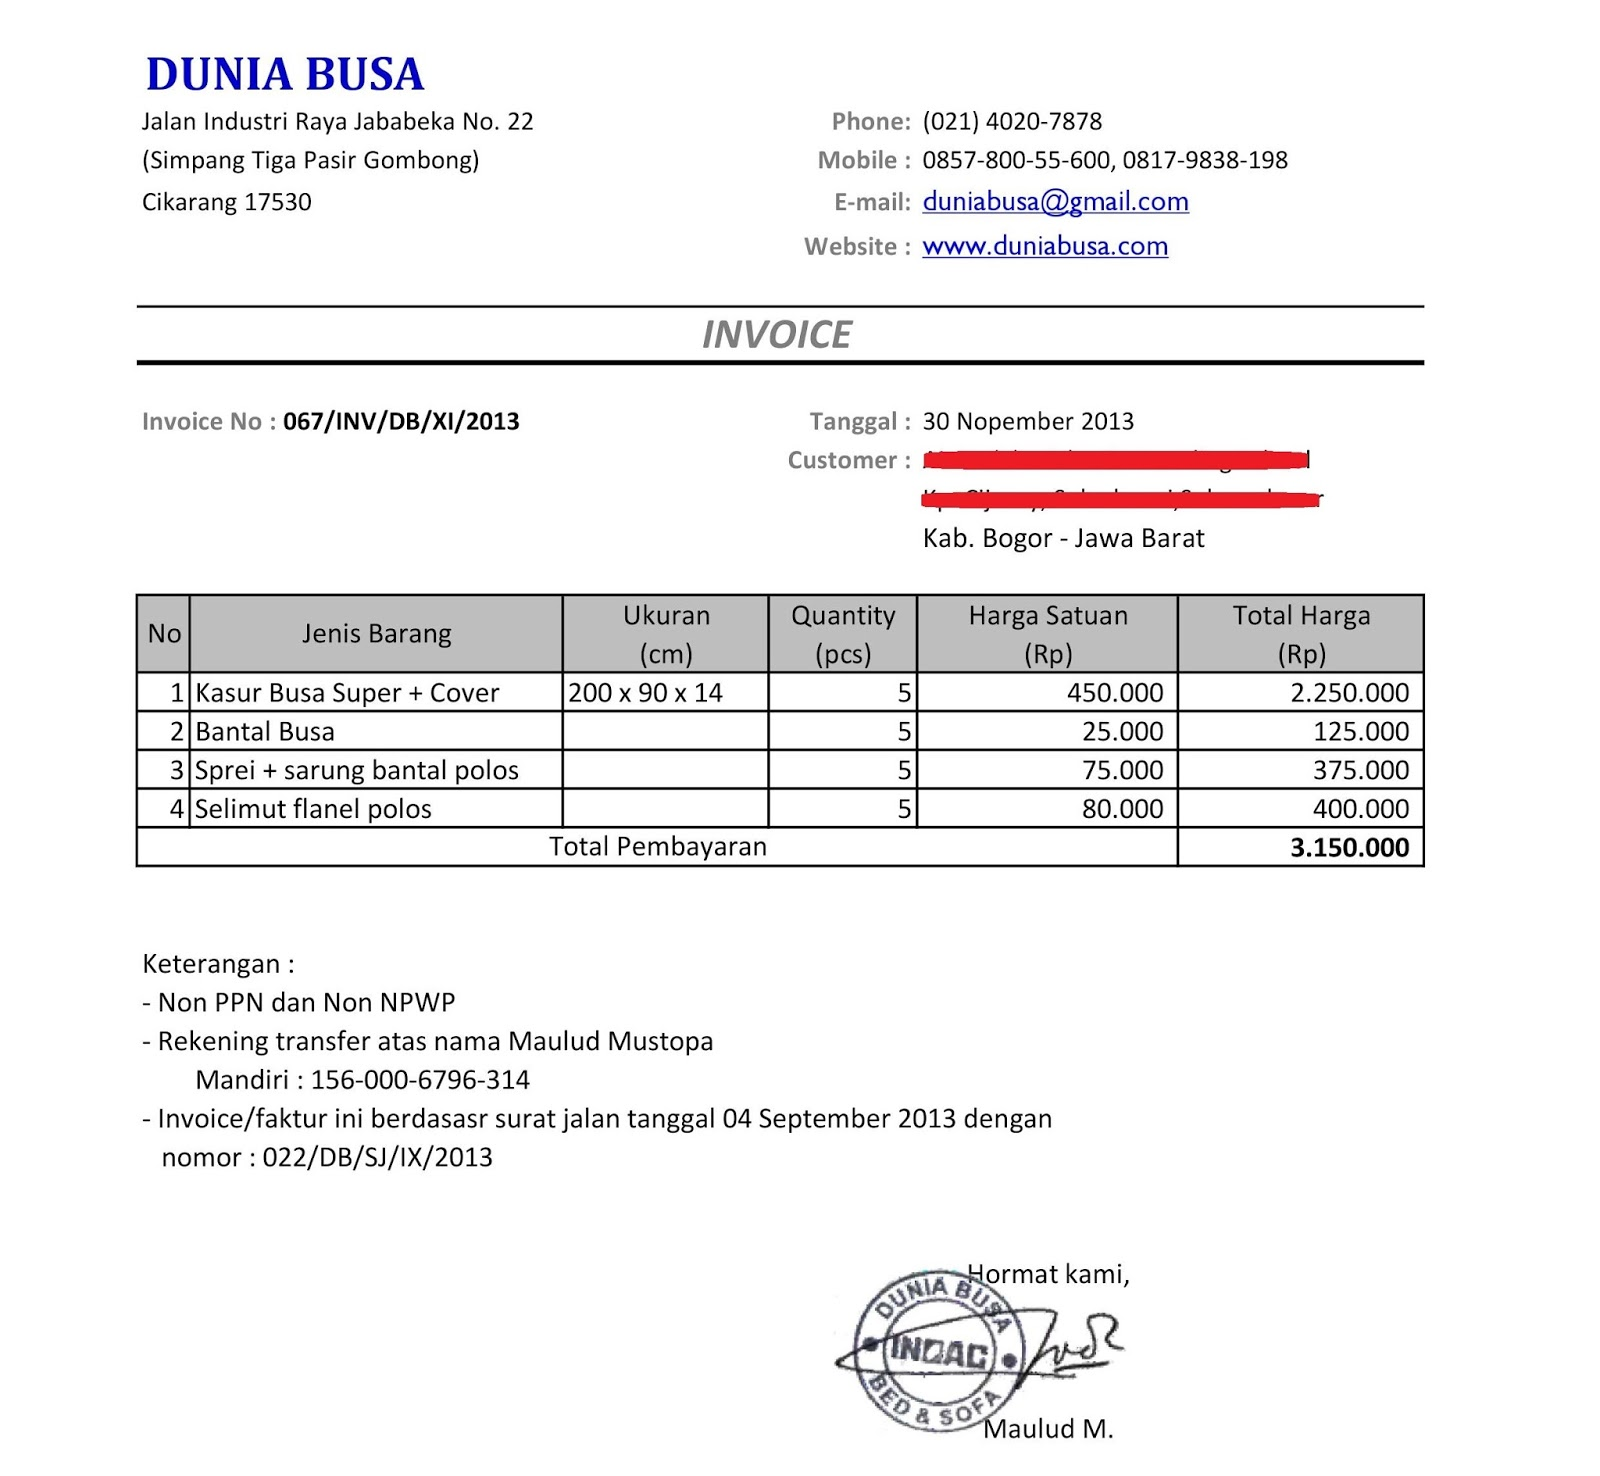 Centralasianshepherdus  Inspiring Free Invoice Online  Create Invoice Online  Invoice Template  With Extraordinary Contoh Format Invoice Atau Surat Tagihan  Brankas Arsip  Free Invoice Online With Agreeable Invoices Online Free Also Sample Invoice For Consulting Services In Addition Format For Invoice And Free Invoice Template Microsoft Works As Well As Purchase Order And Invoice Additionally Template Of An Invoice From Sklepco With Centralasianshepherdus  Extraordinary Free Invoice Online  Create Invoice Online  Invoice Template  With Agreeable Contoh Format Invoice Atau Surat Tagihan  Brankas Arsip  Free Invoice Online And Inspiring Invoices Online Free Also Sample Invoice For Consulting Services In Addition Format For Invoice From Sklepco